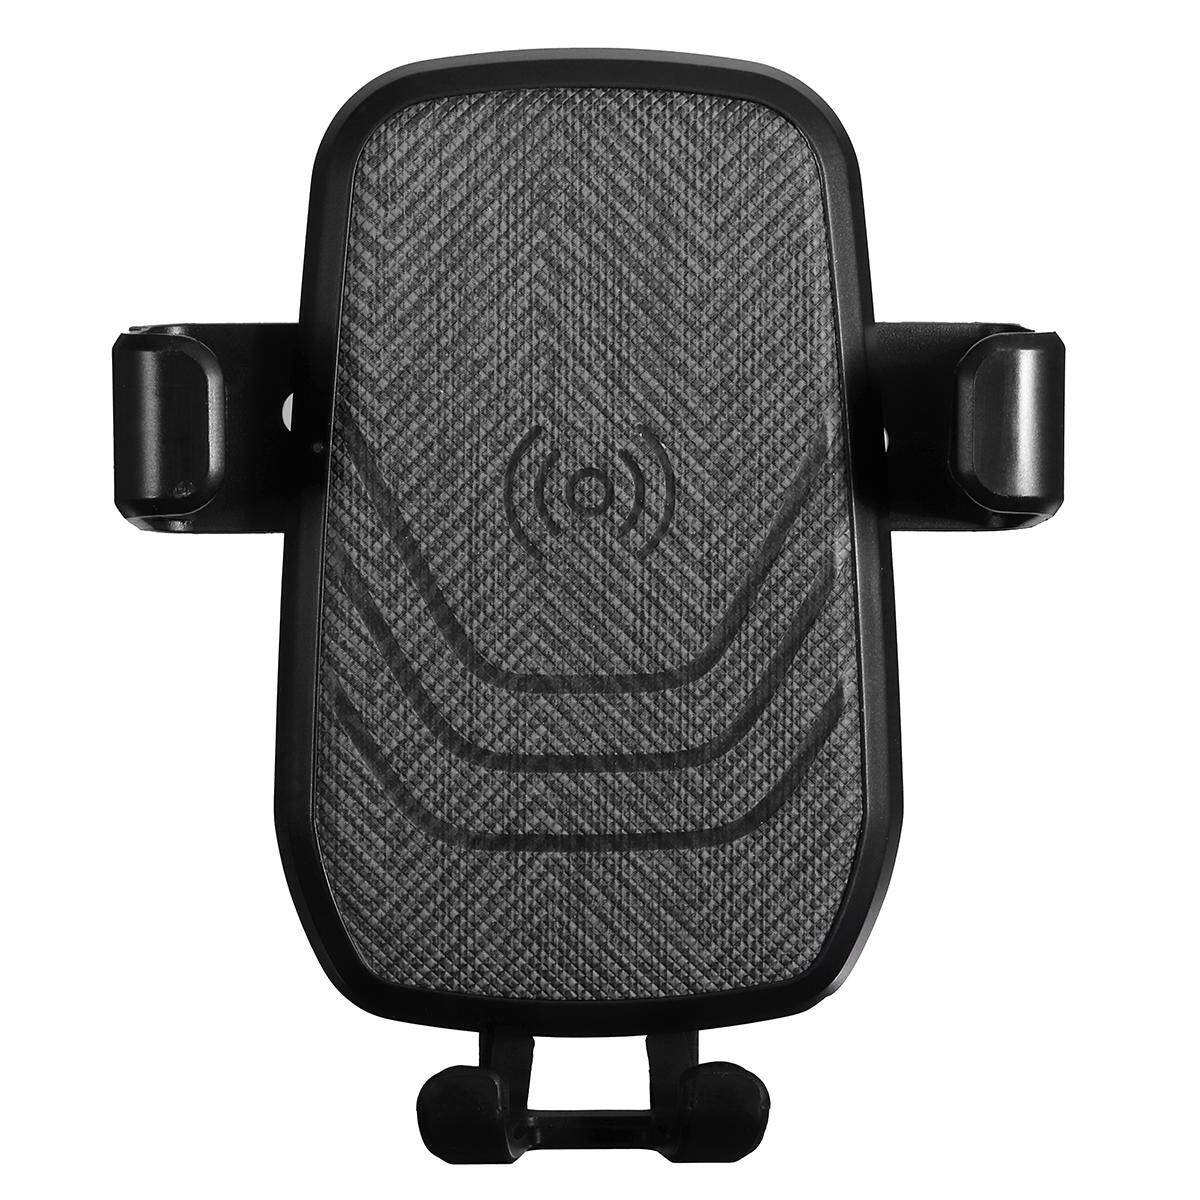 Gravity Qi Charger Car Wireless Air Vent Holder Mount For Iphone X 8 Samsung S9 Intl Review